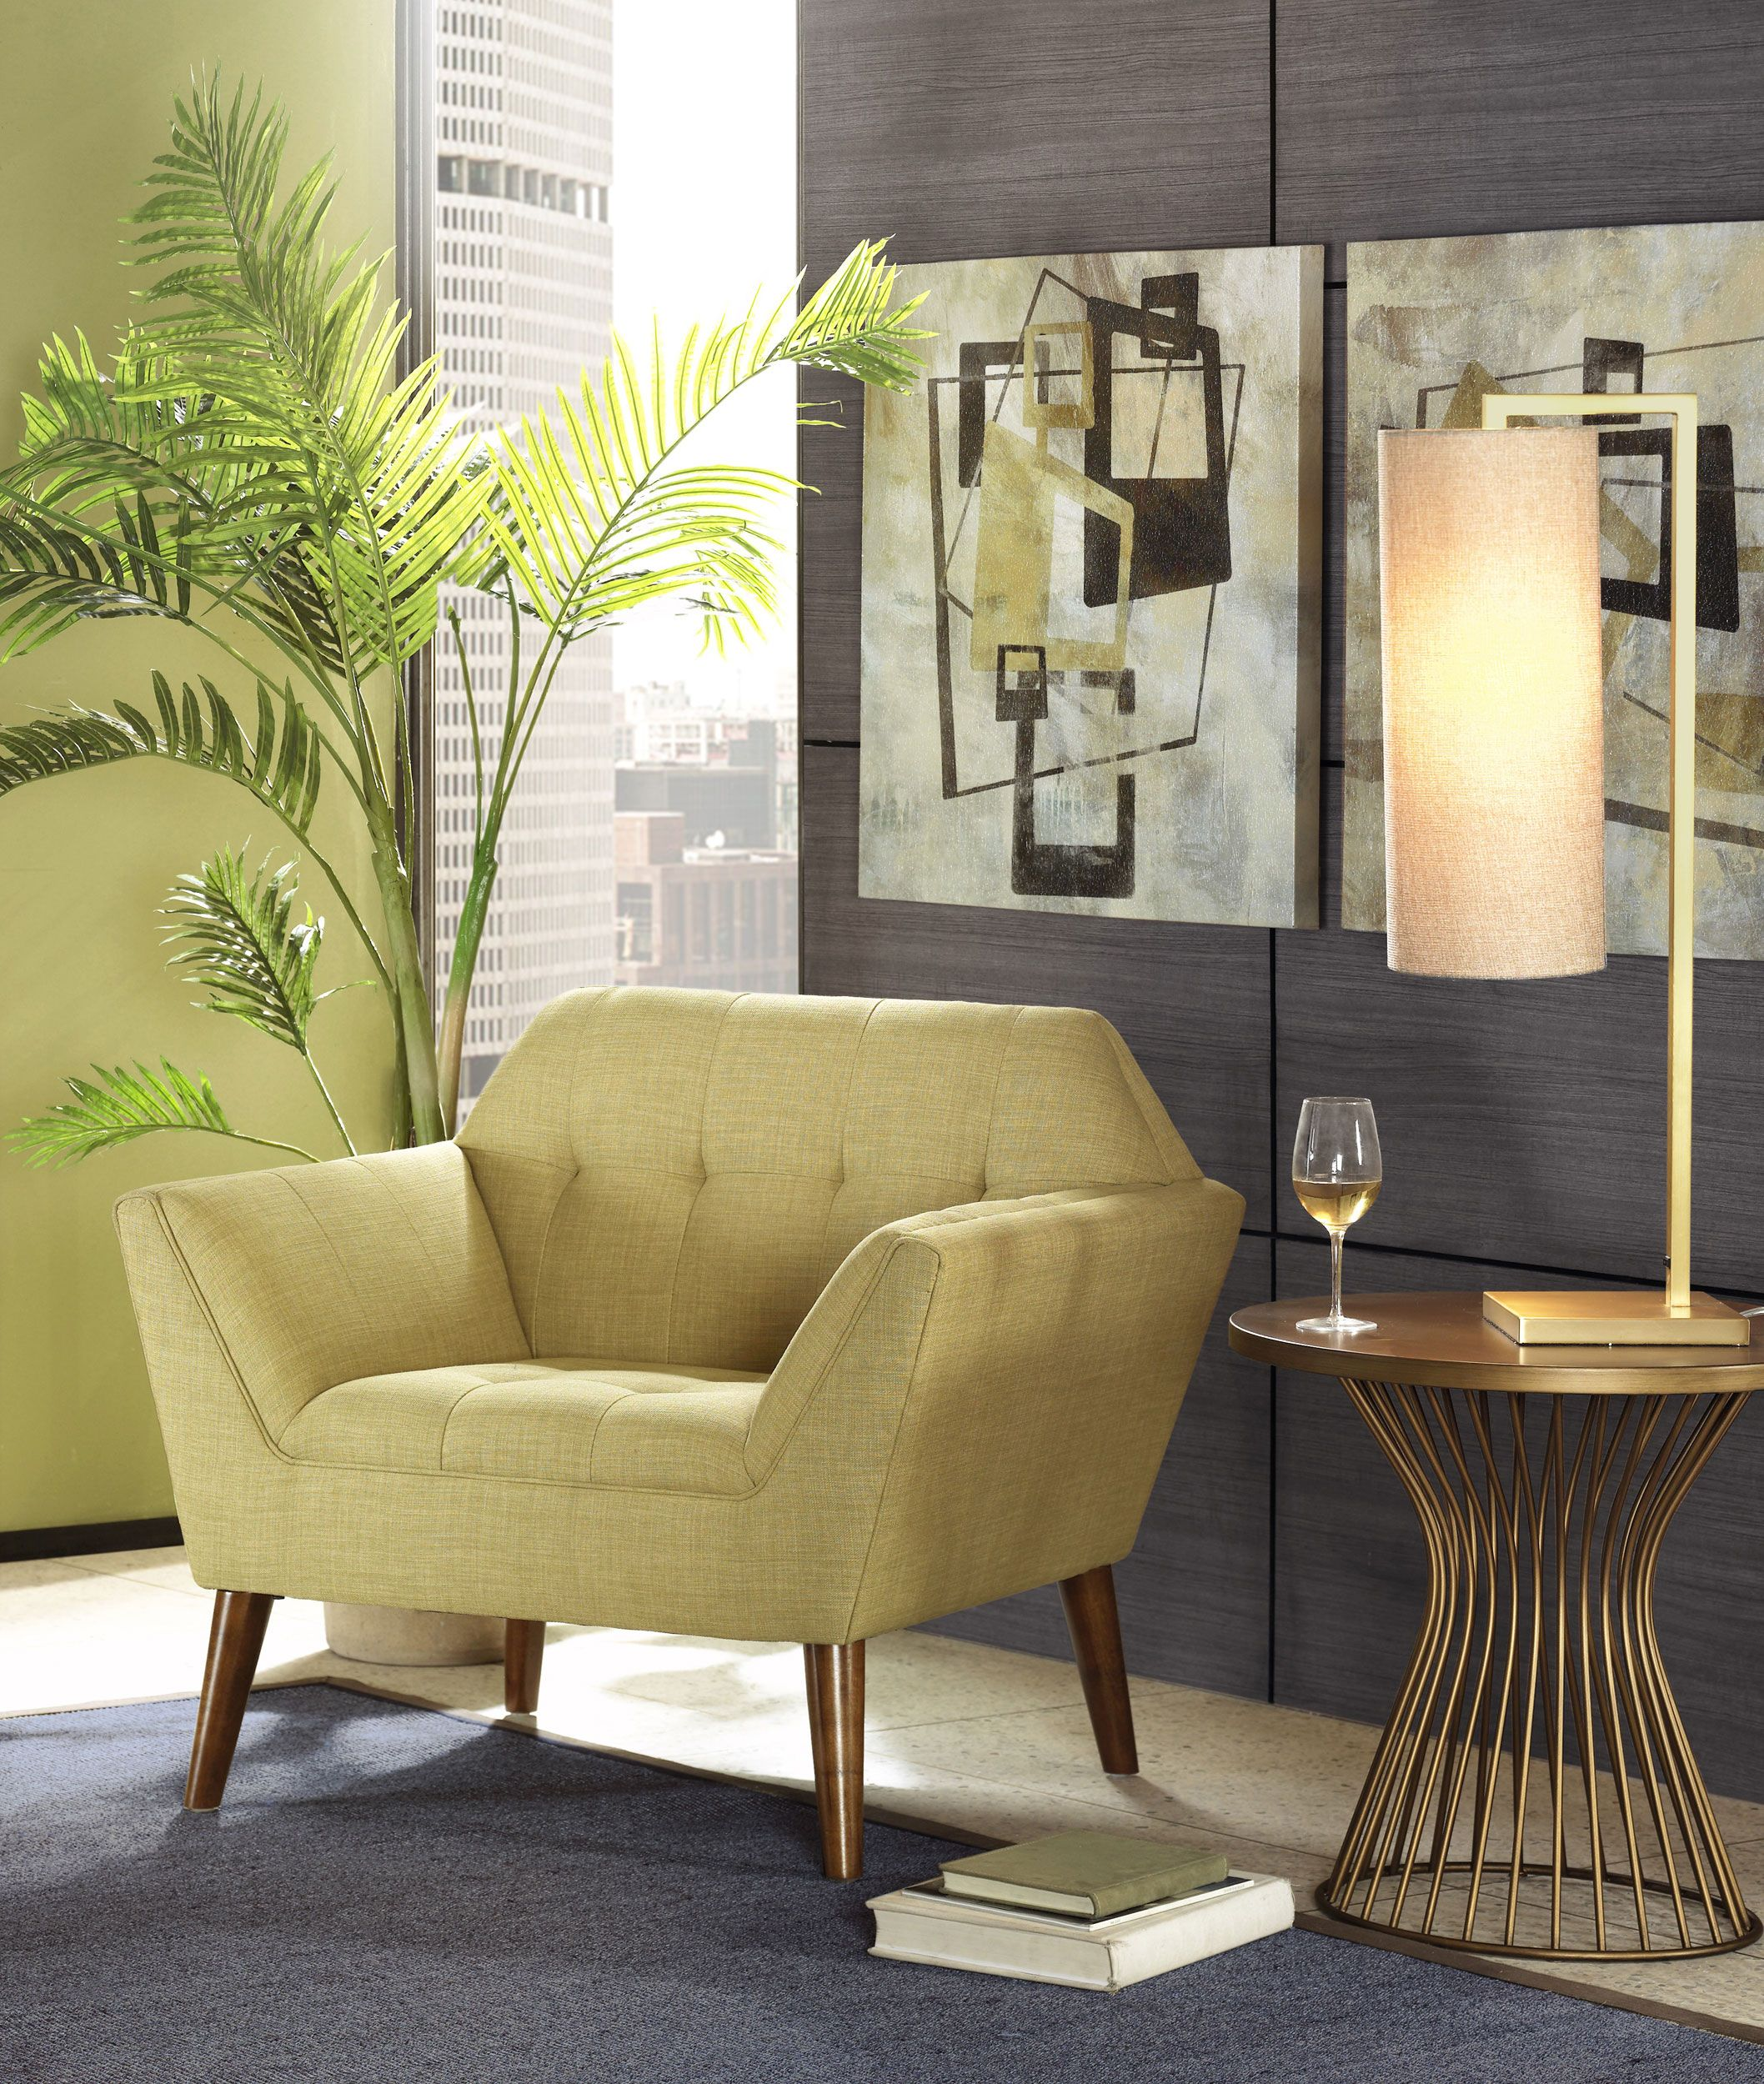 Wholesale Furniture Outlet Newport: Ink+Ivy Newport Lime Green Upholstered Mid Century Chair